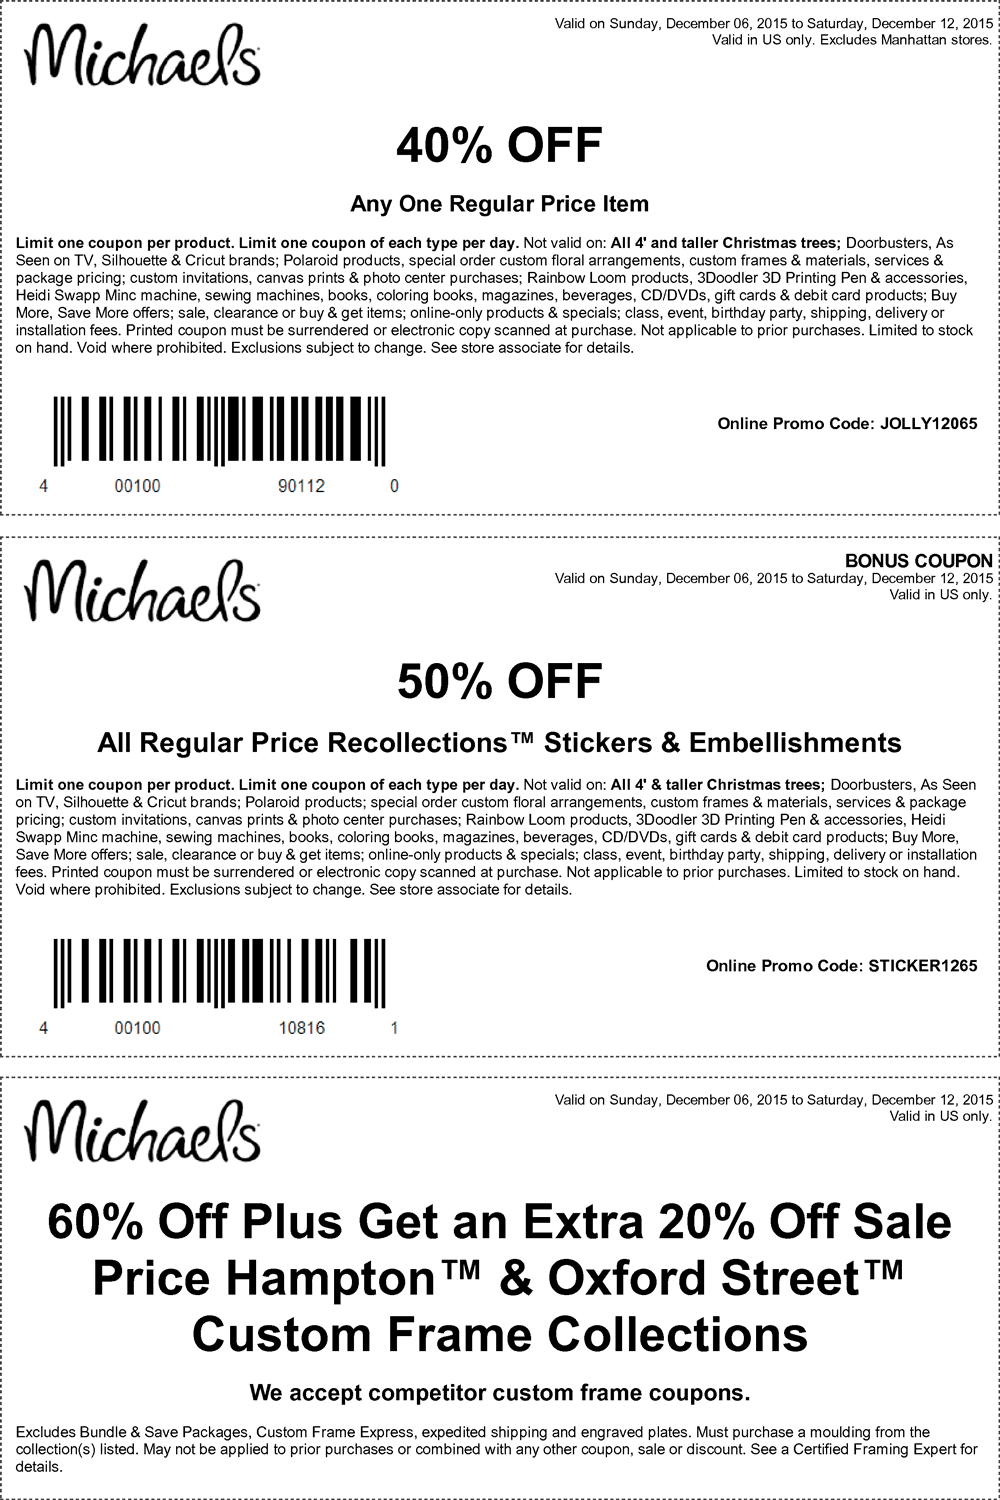 Michaels Coupon January 2019 40% off a single item & more at Michaels, or online via promo code JOLLY12065